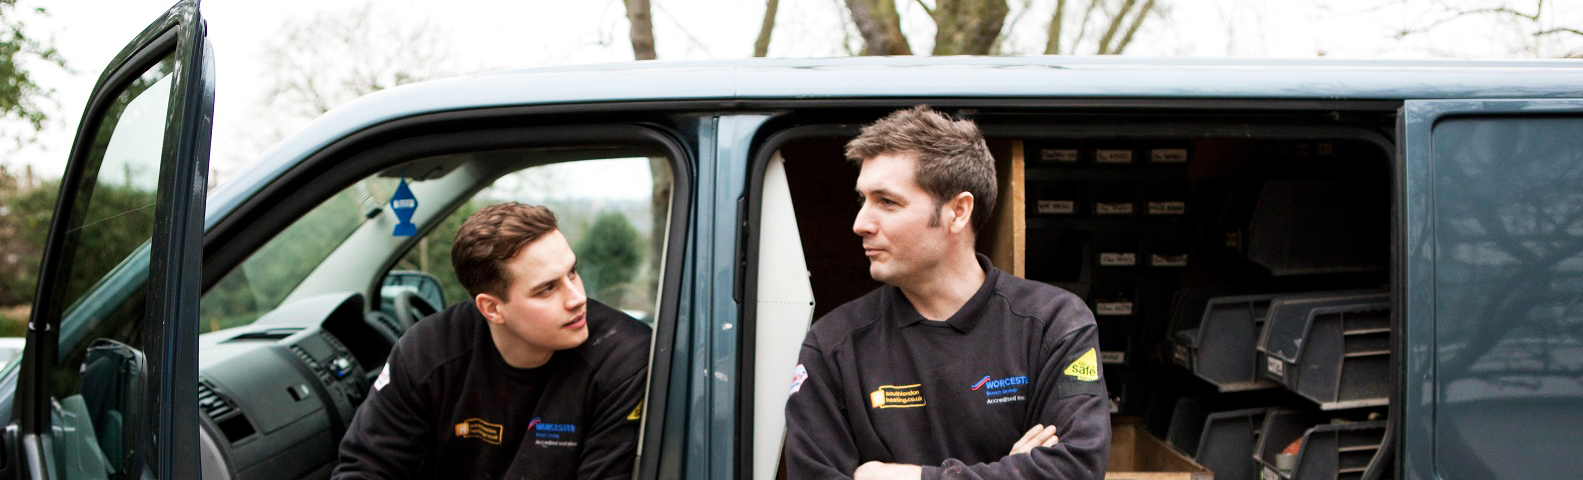 South London Heating - Your local heating specialist